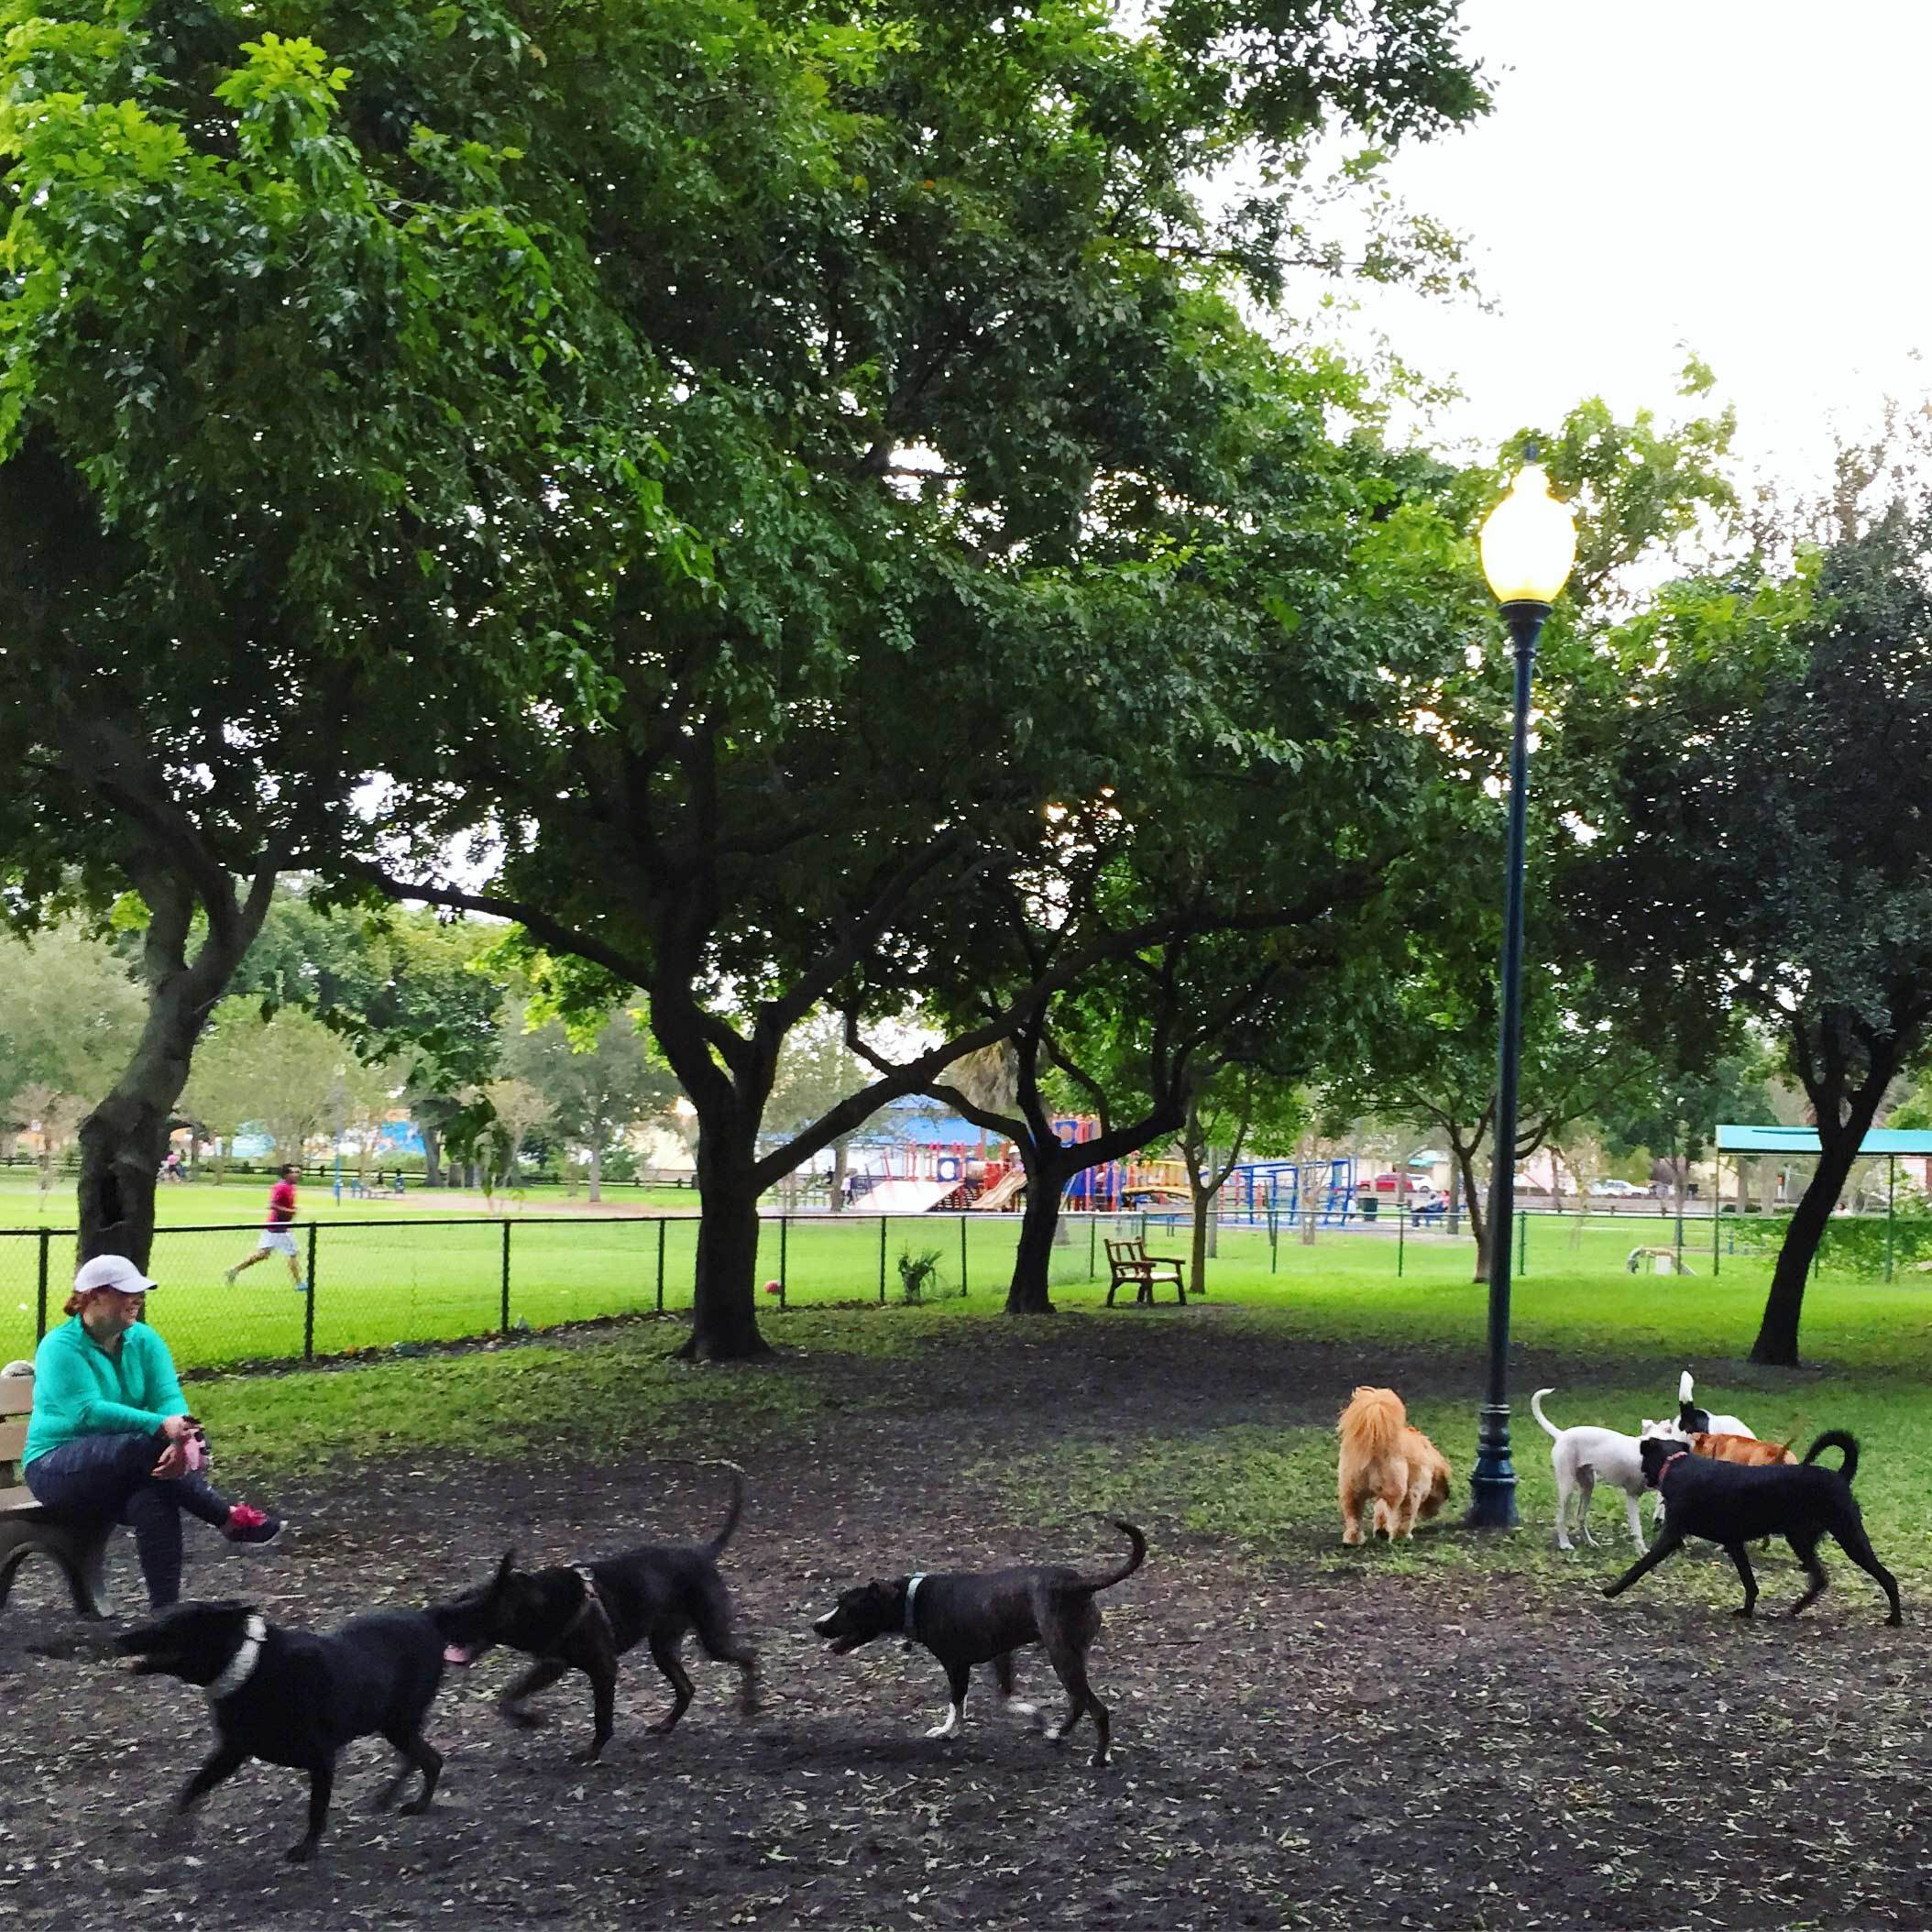 Dog park in West Palm Beach, Florida